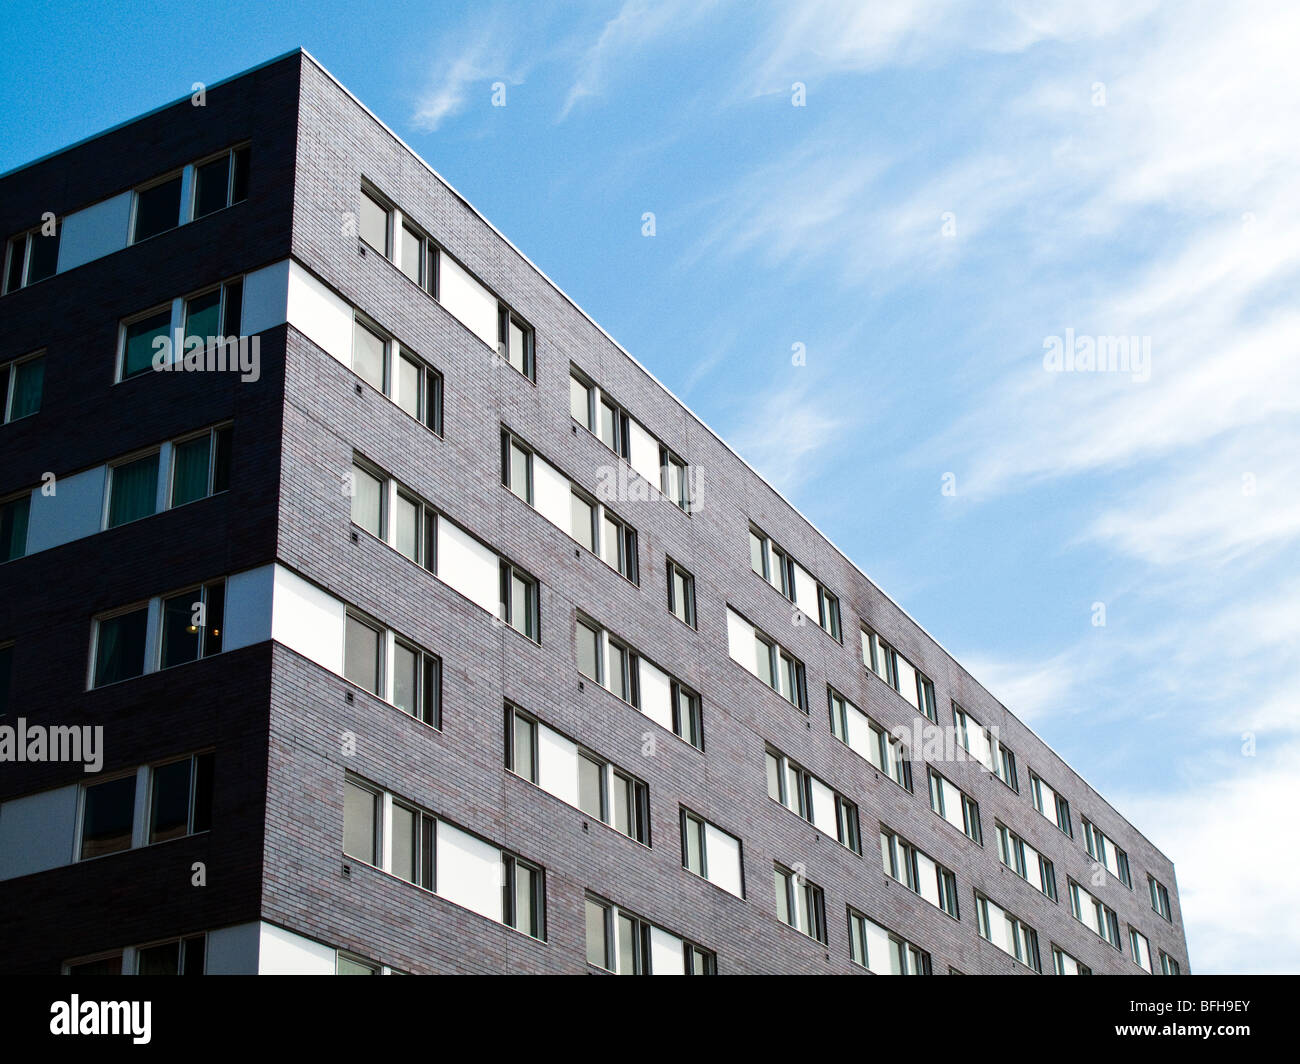 detail of a student residence, condominium - Stock Image